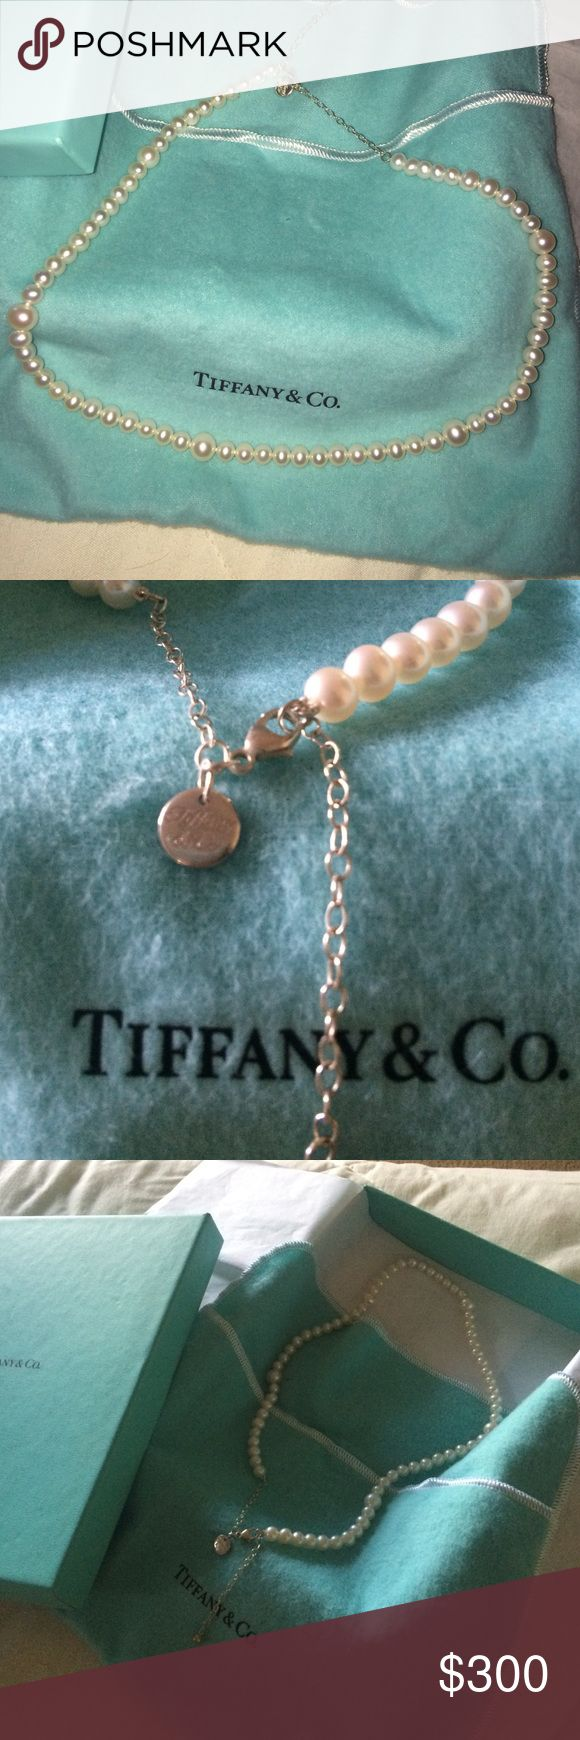 """Tiffany Pearl Necklace Timeless Tiffany pearls. 16"""" in length. Worn once. Comes in original bag and box. Tiffany & Co. Jewelry Necklaces"""